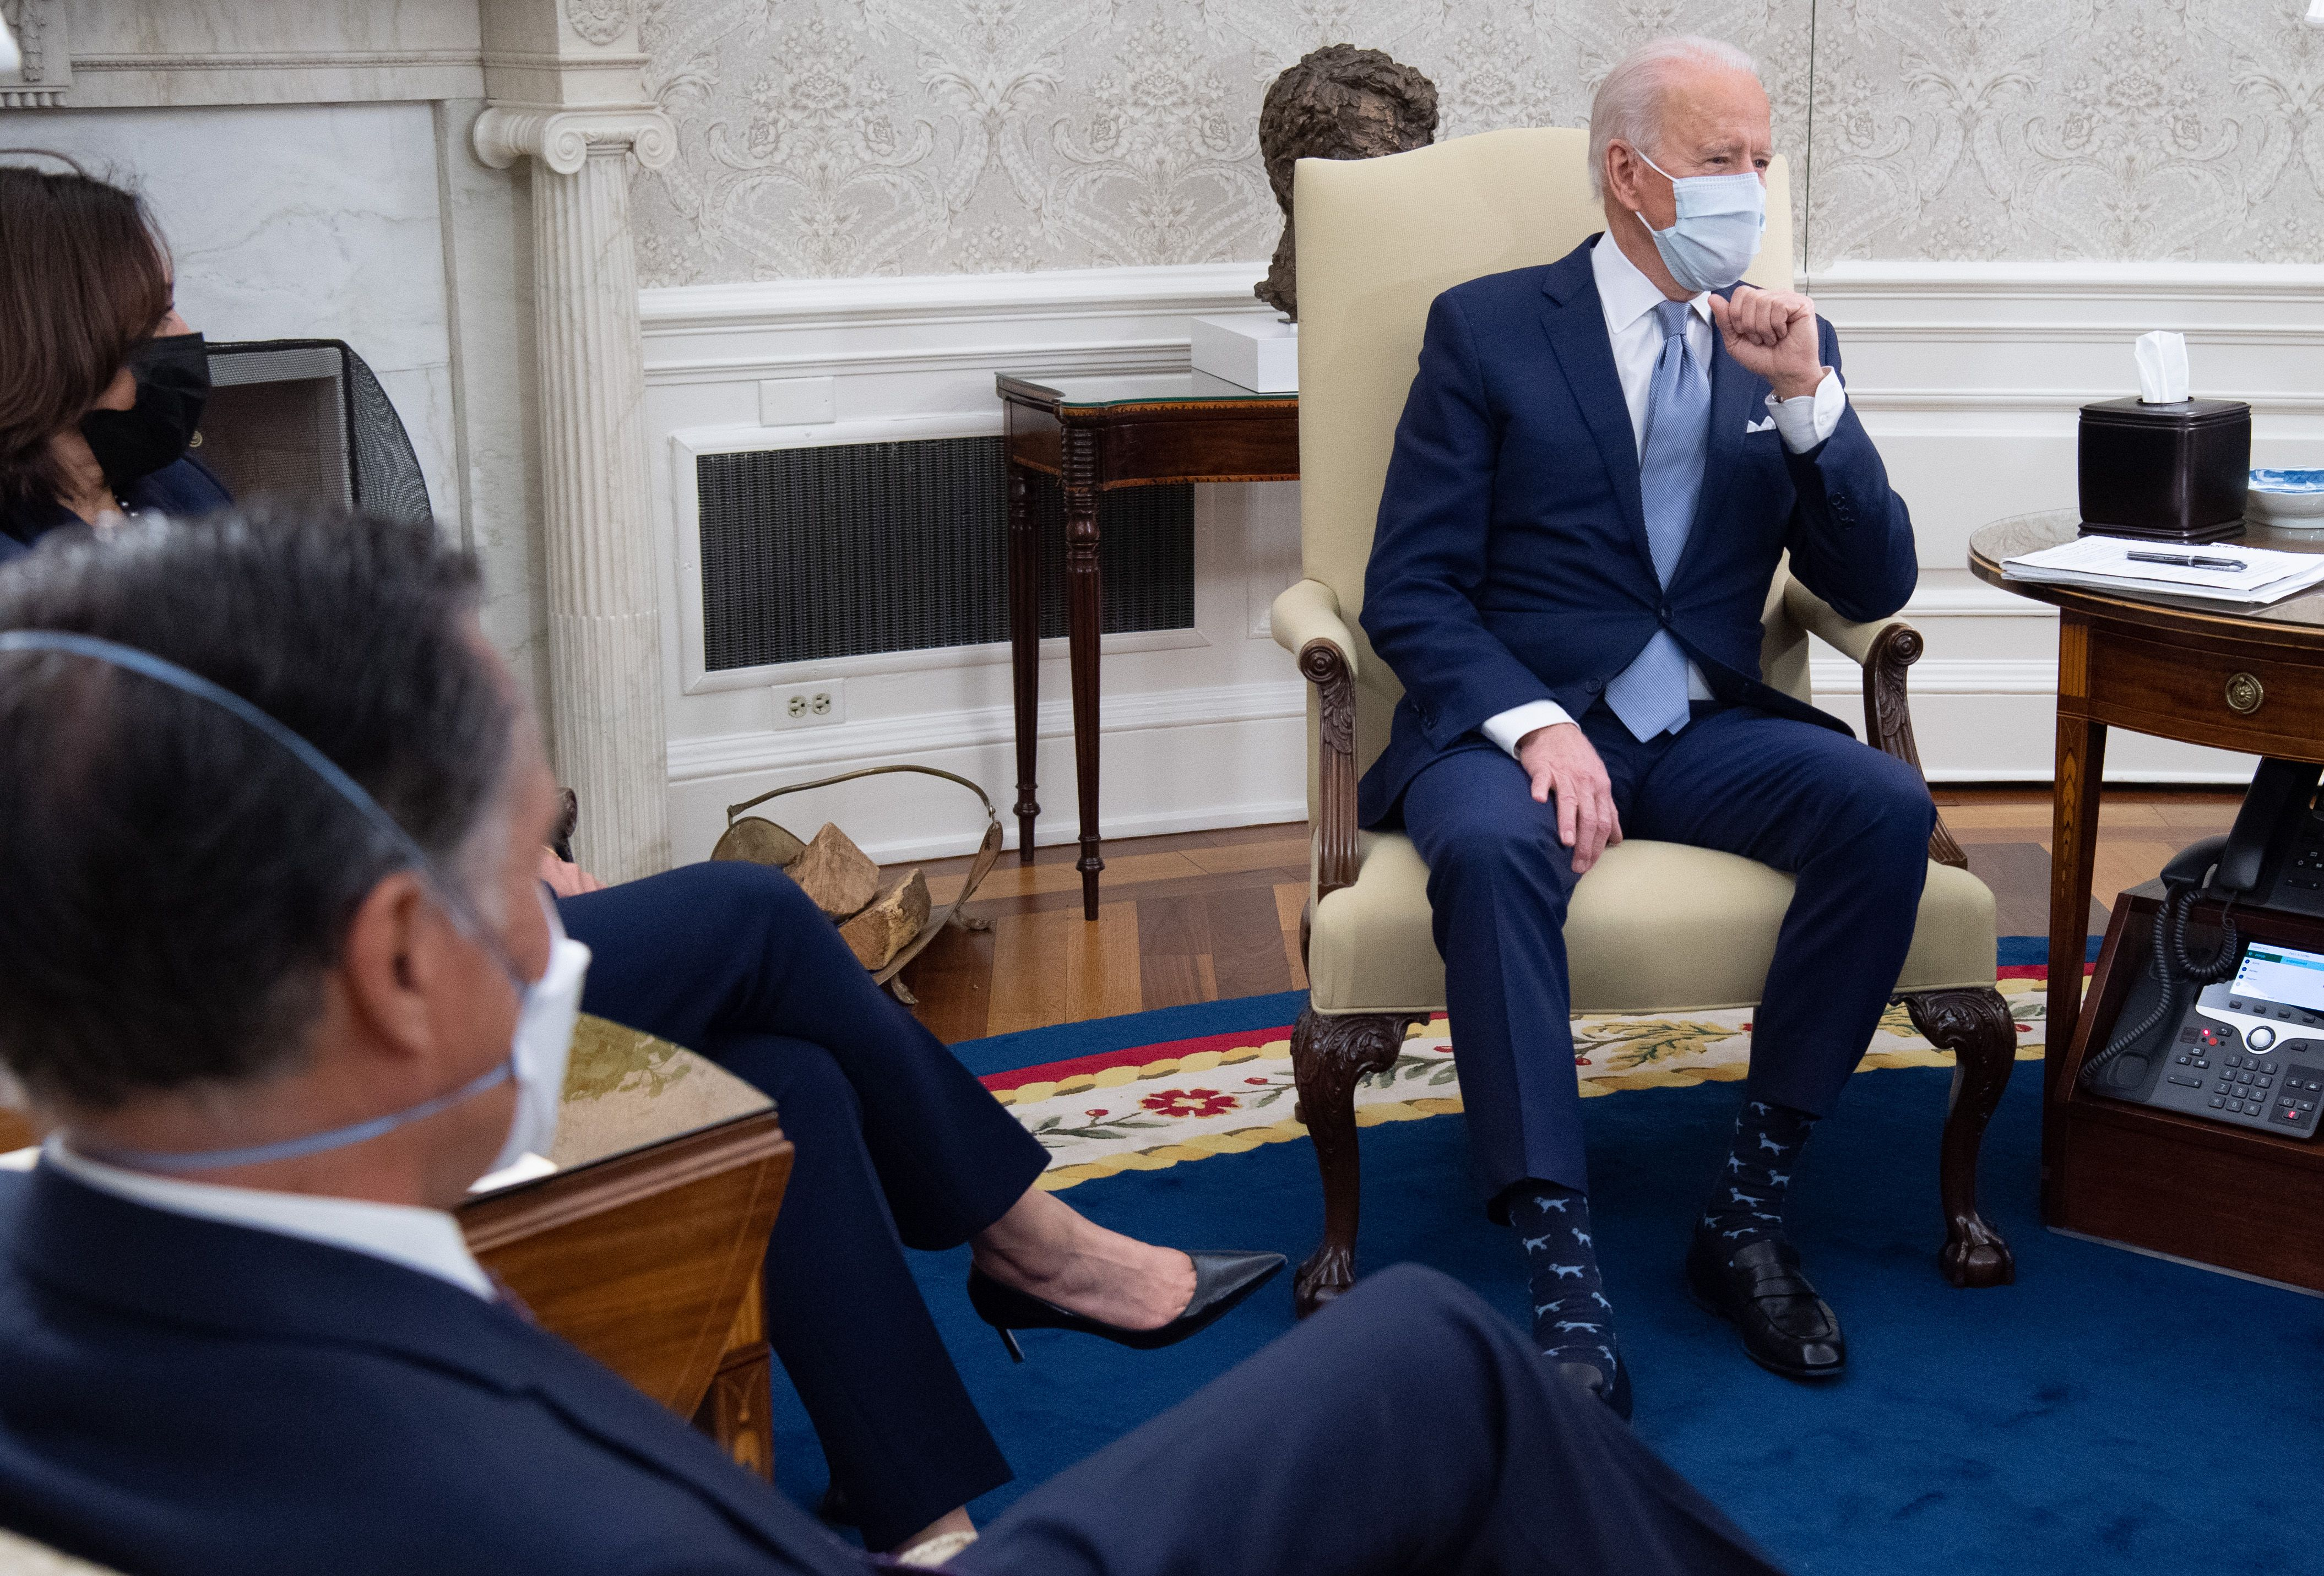 Mitt Romney meeting with Kamala Harris and Joe Biden in the Oval Office.